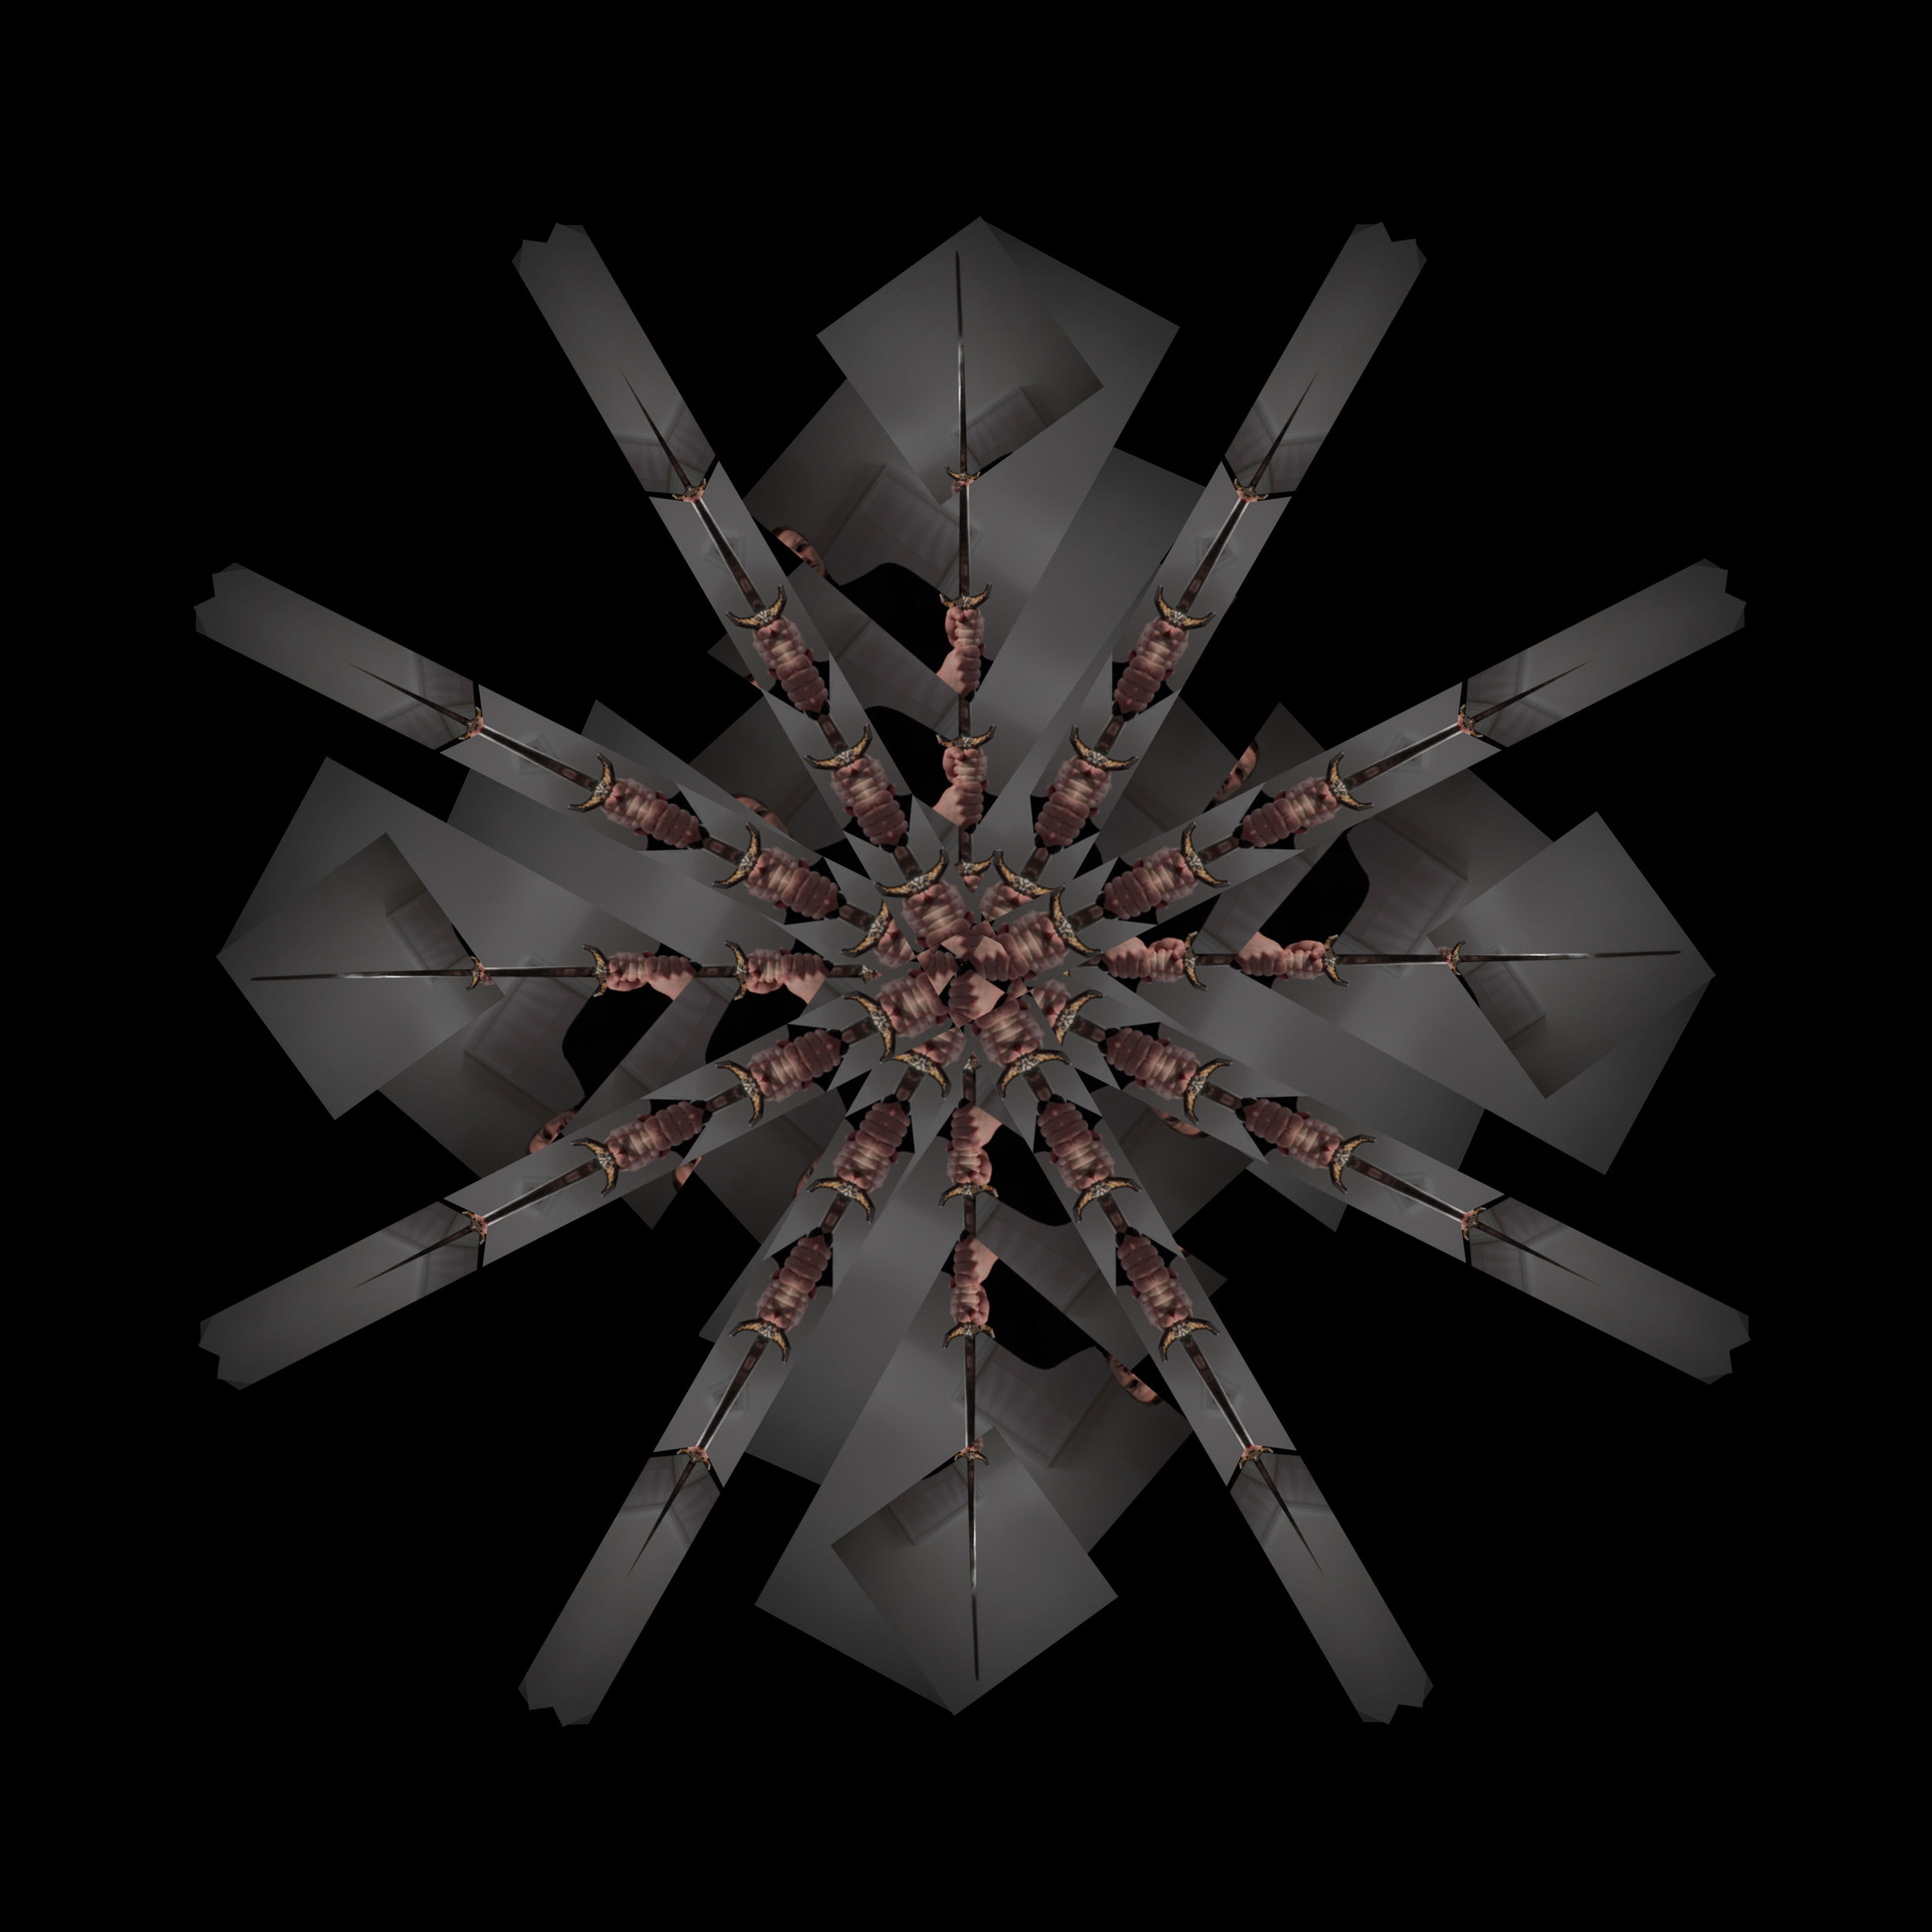 PVR eve sword snowflake